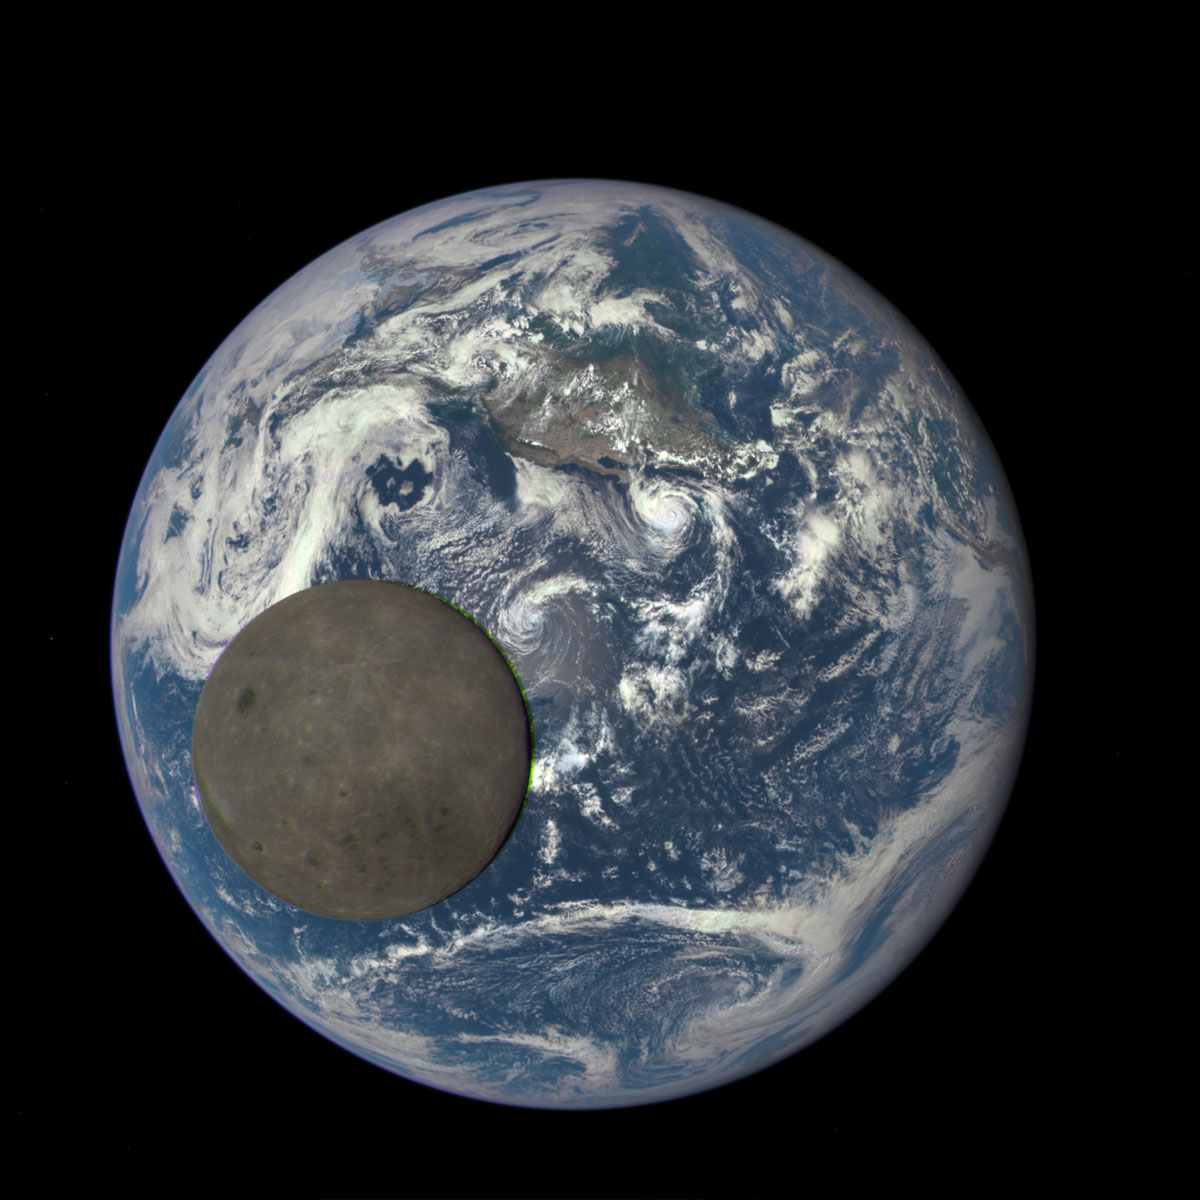 nasa captures dark side of the moon as it crosses earth